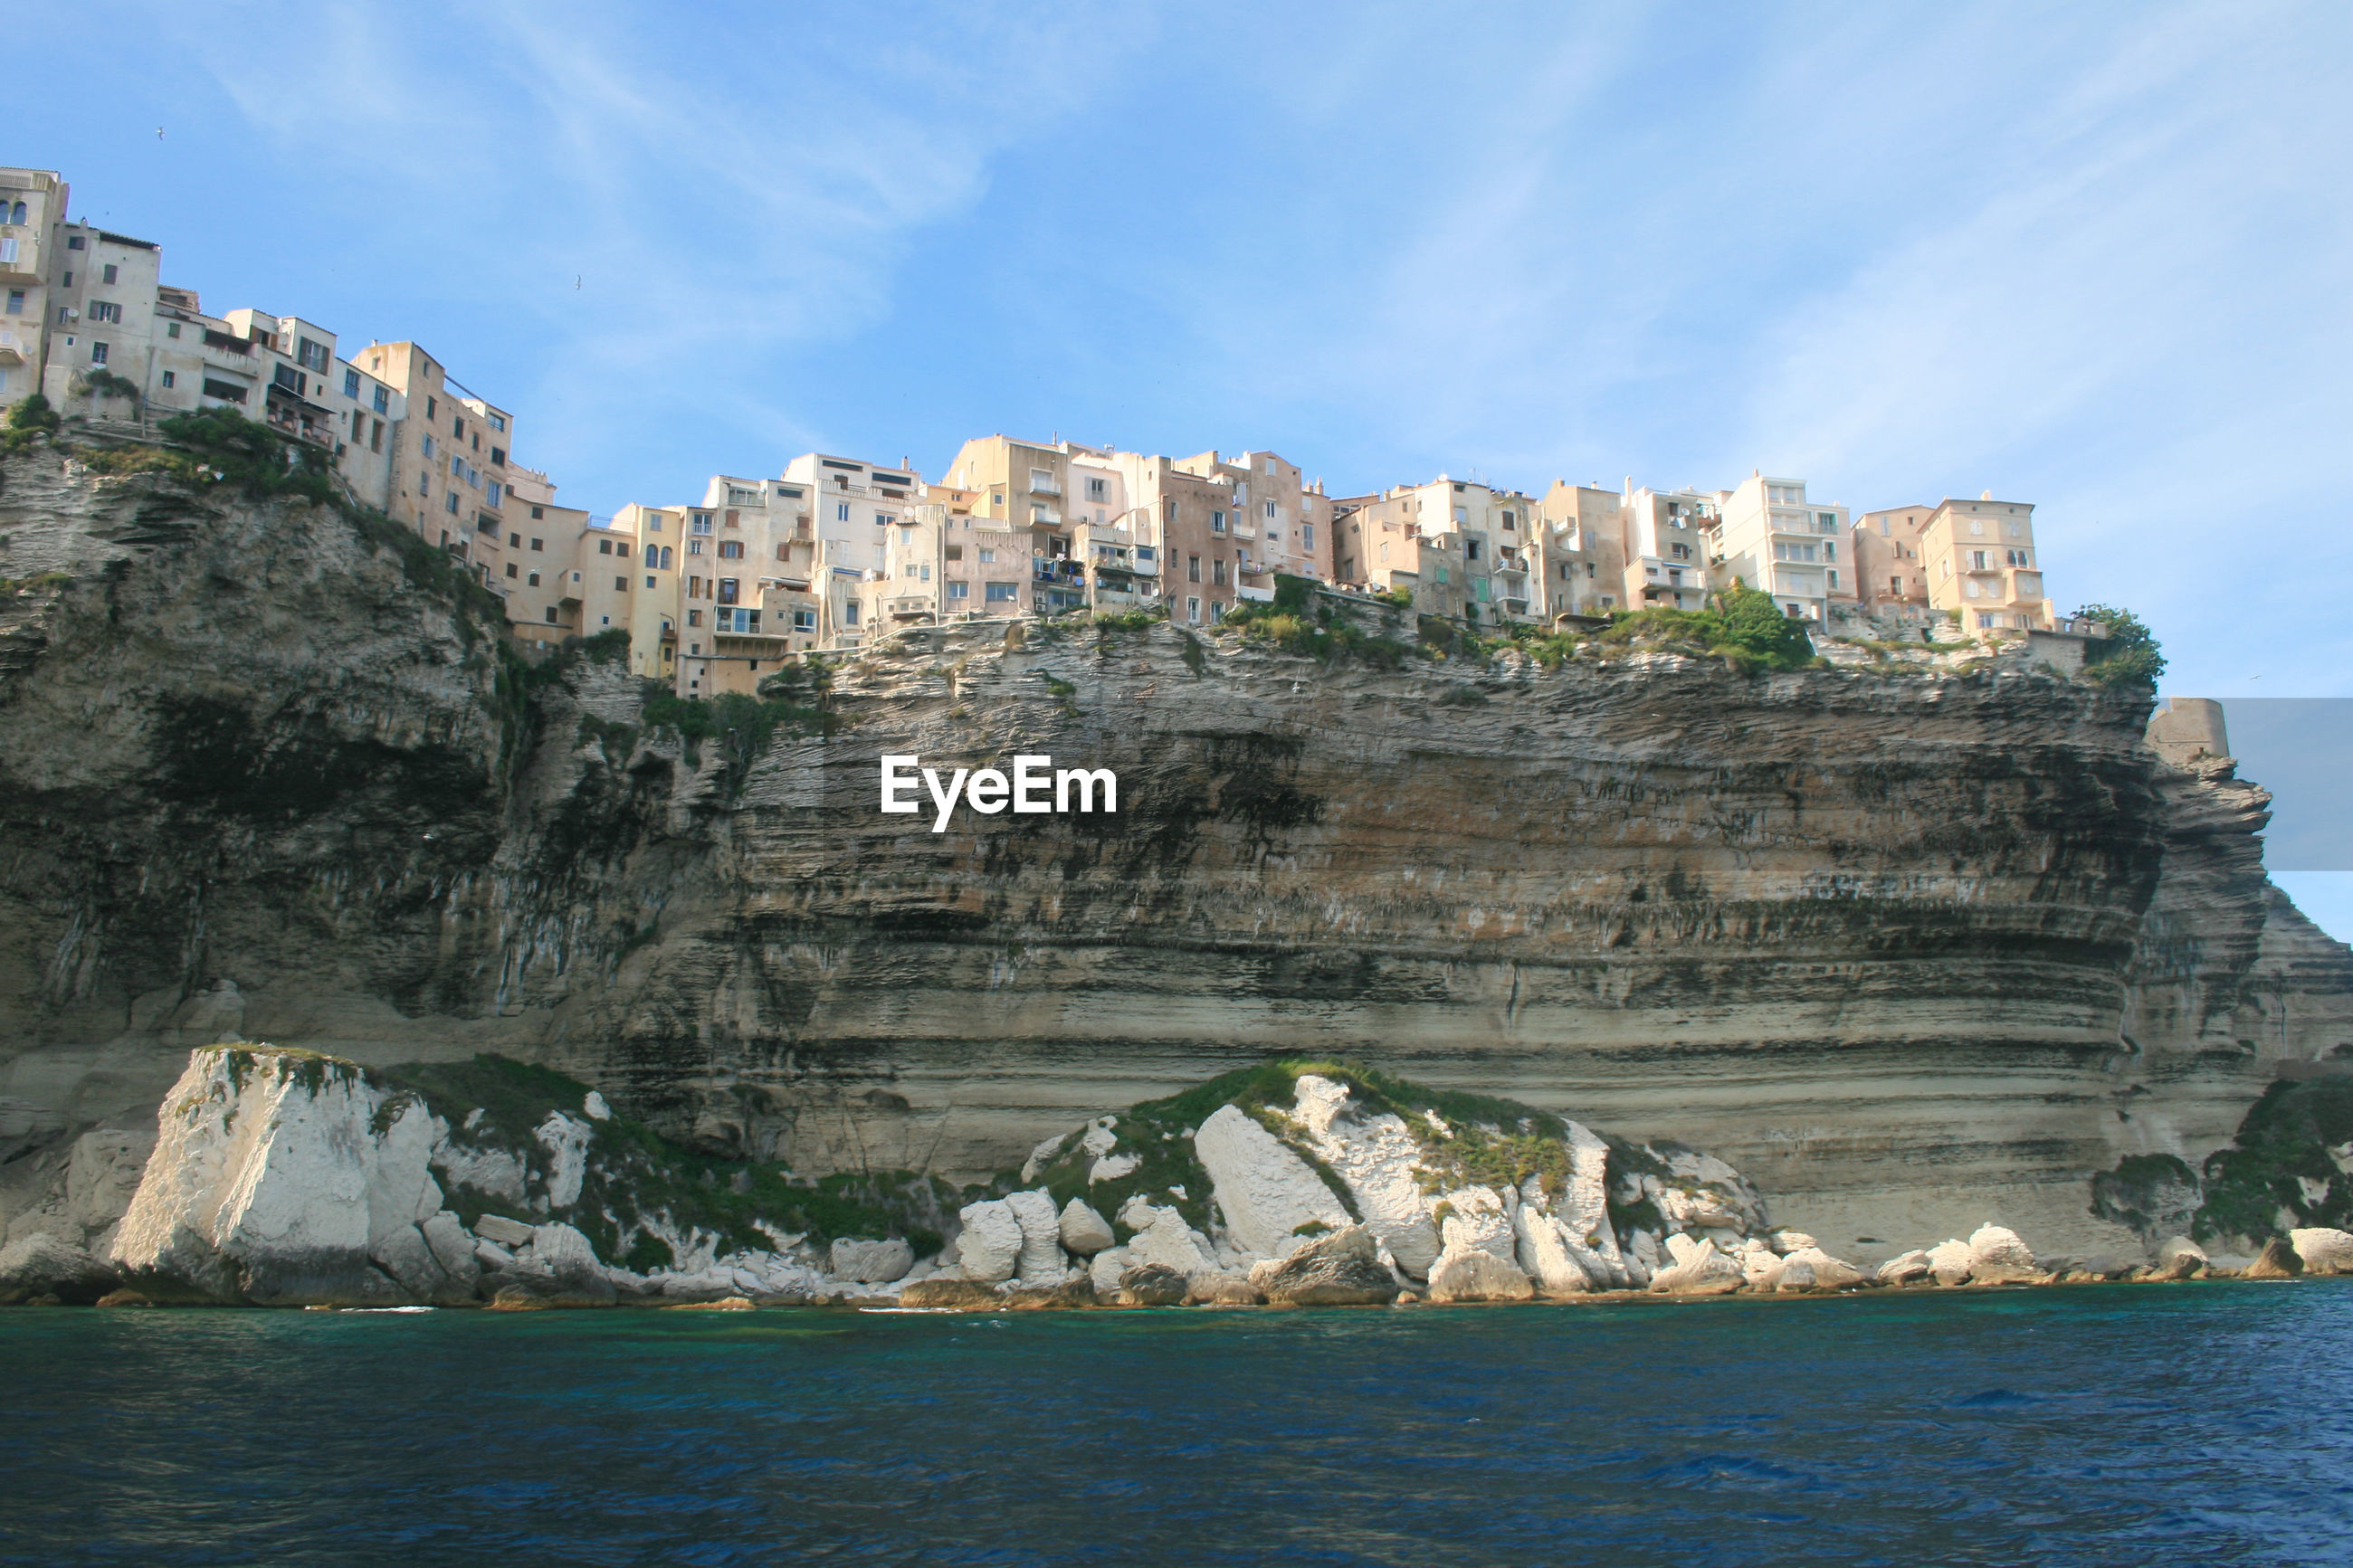 PANORAMIC VIEW OF SEA AND BUILDINGS